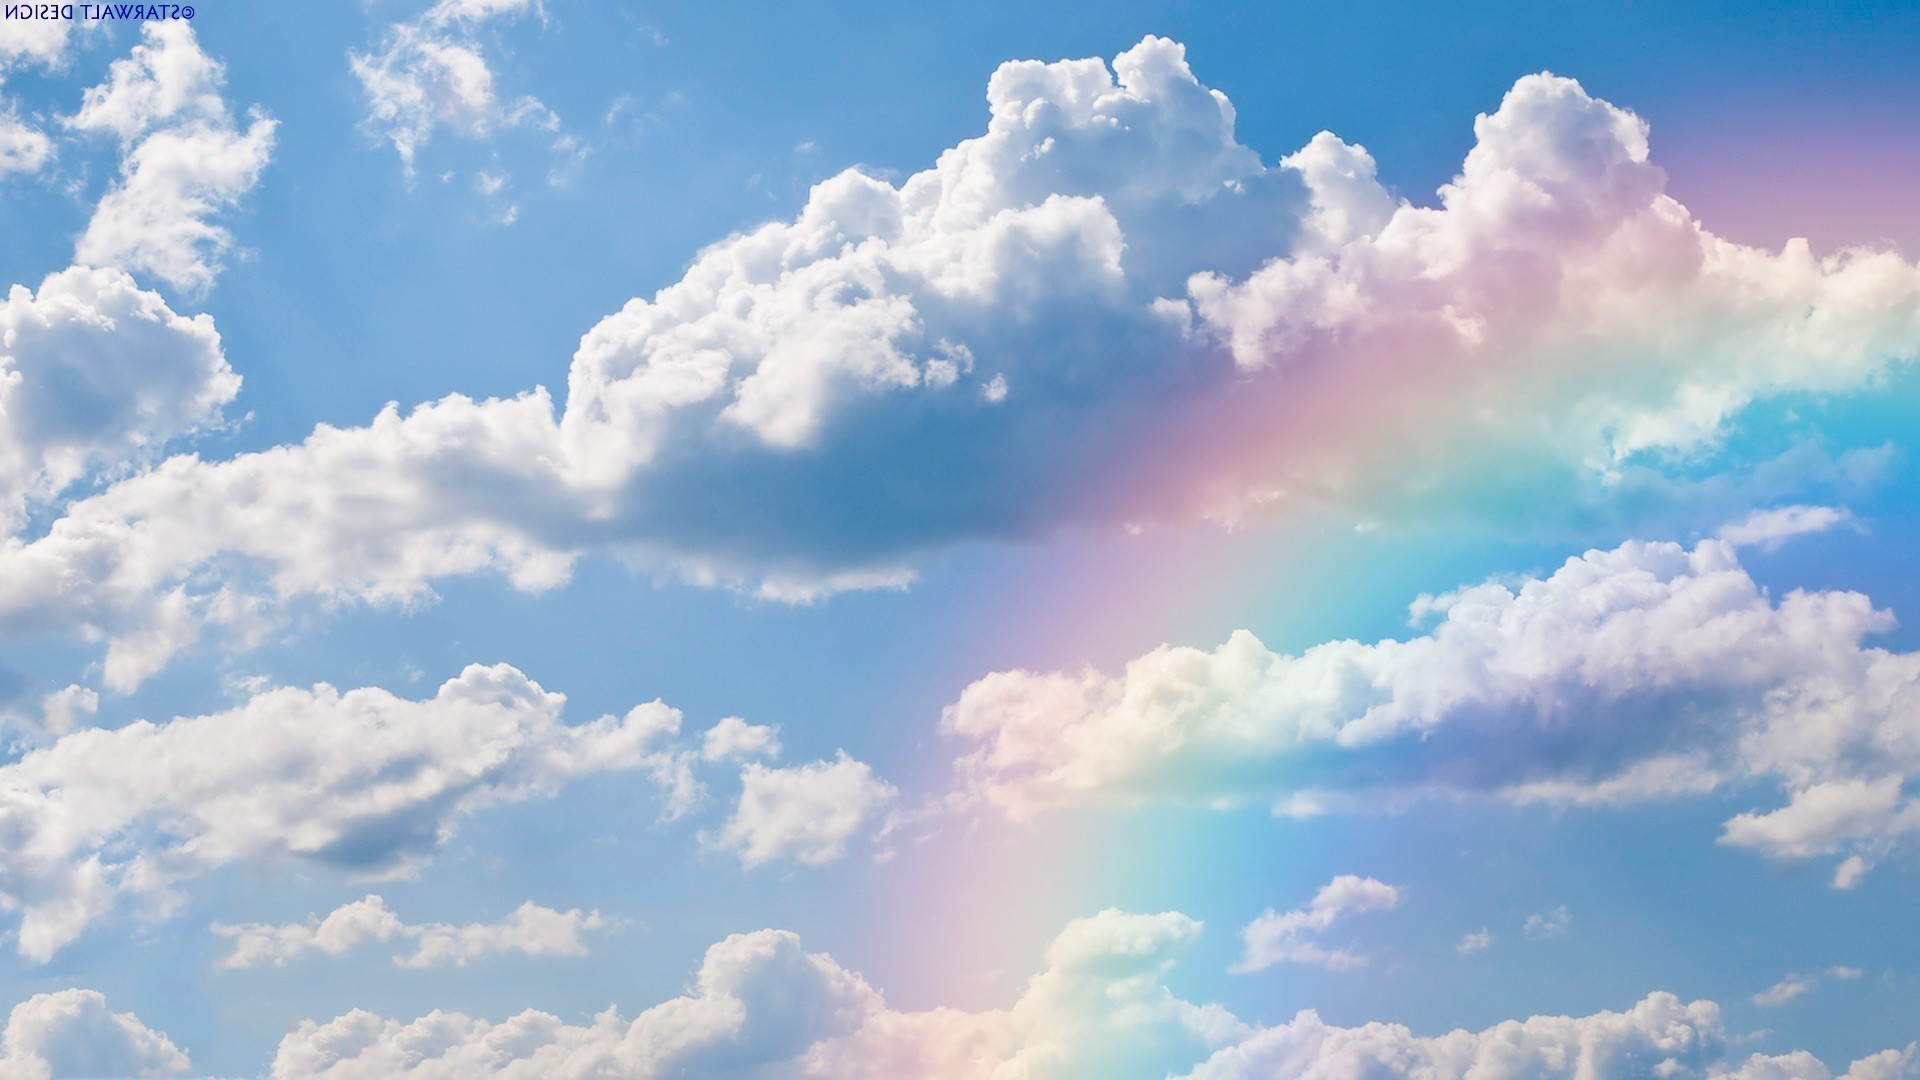 Rainbow in the clouds wallpaper   1034381 1920x1080